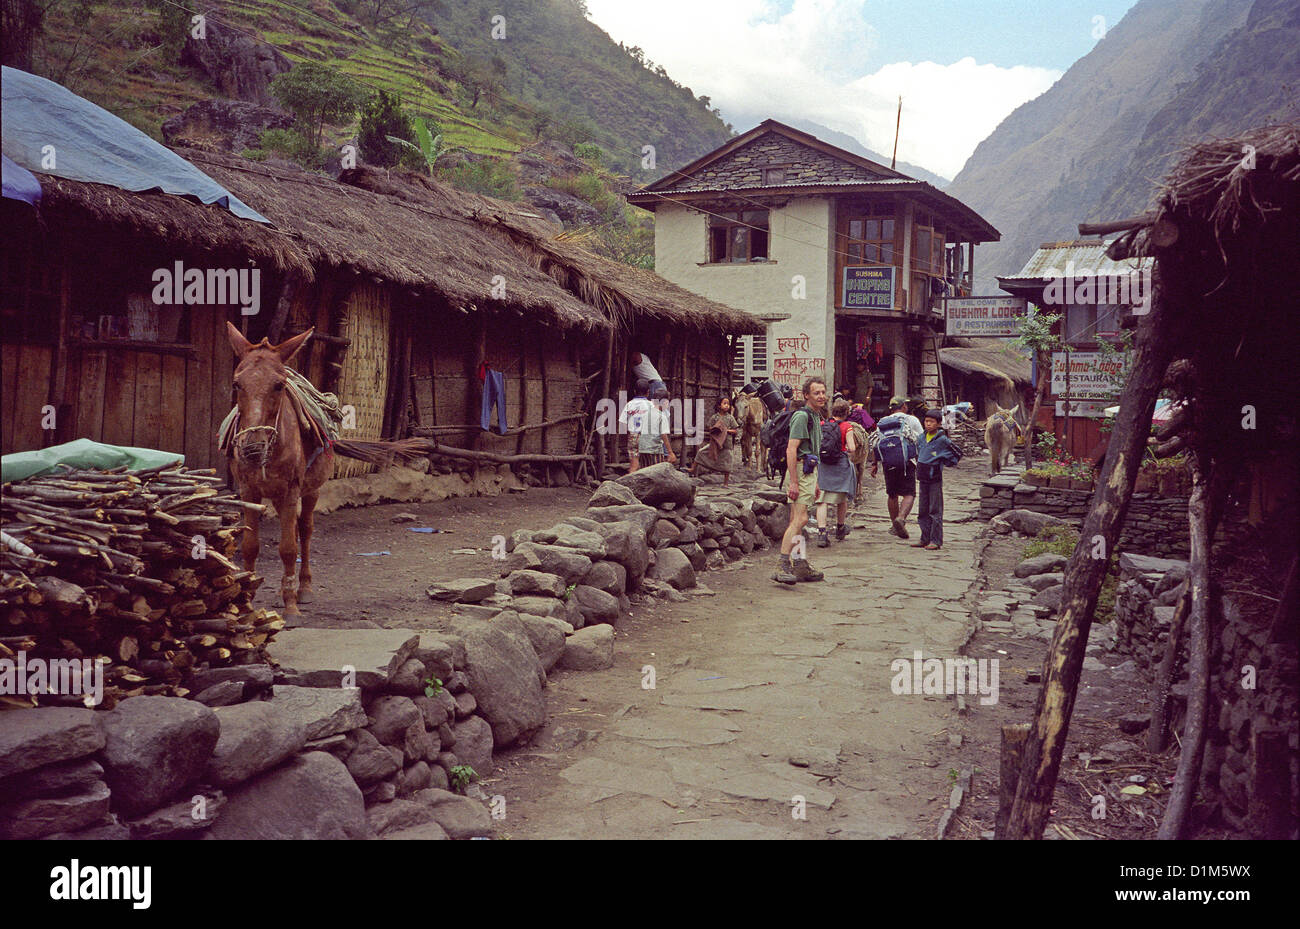 Village Of Jagat With Mule Tea House Lodge And Shopping